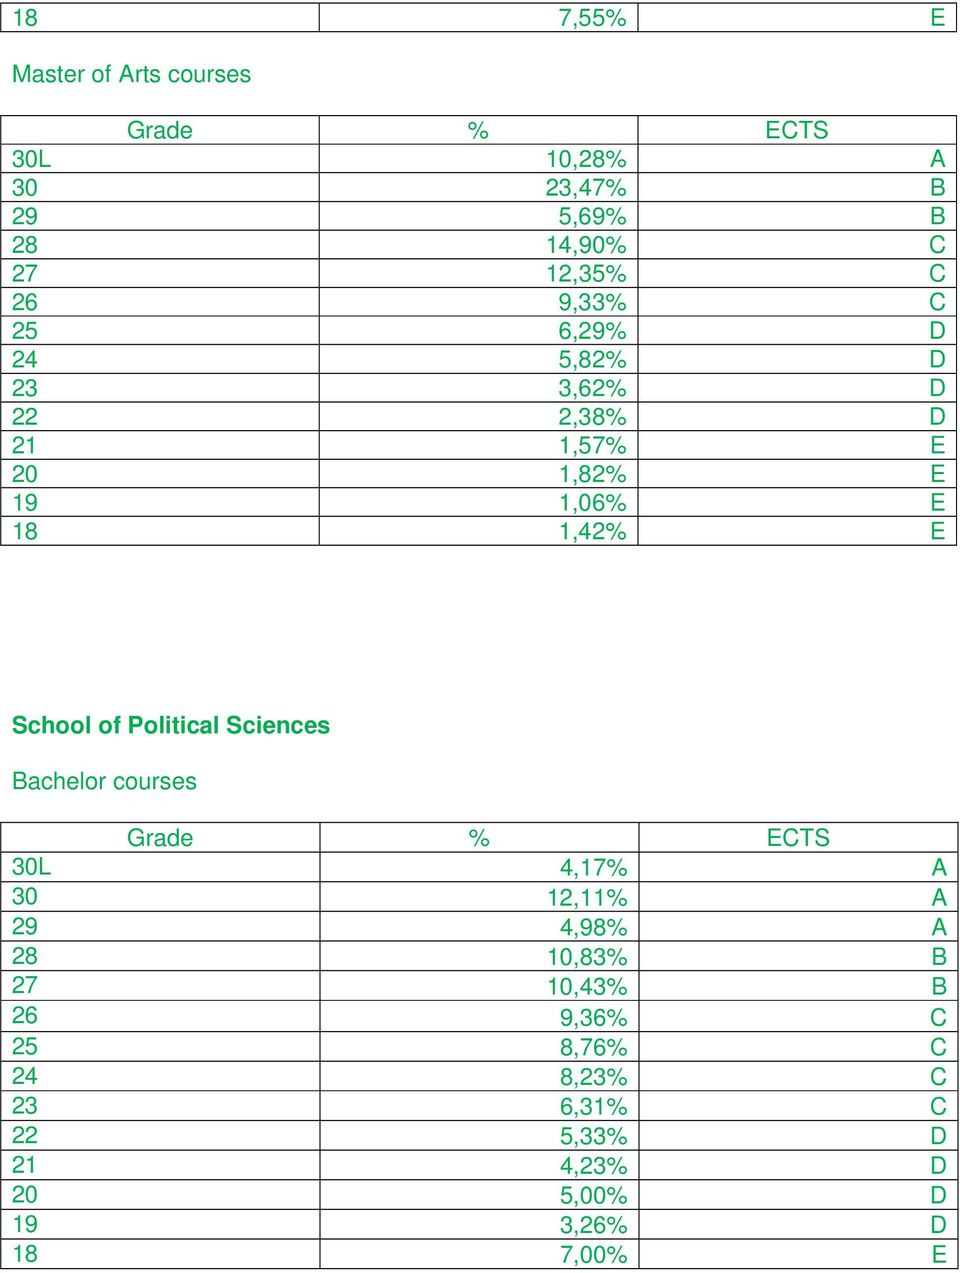 School of Political Sciences Bachelor courses Grade % ECTS 30L 4,17% A 30 12,11% A 29 4,98% A 28 10,83% B